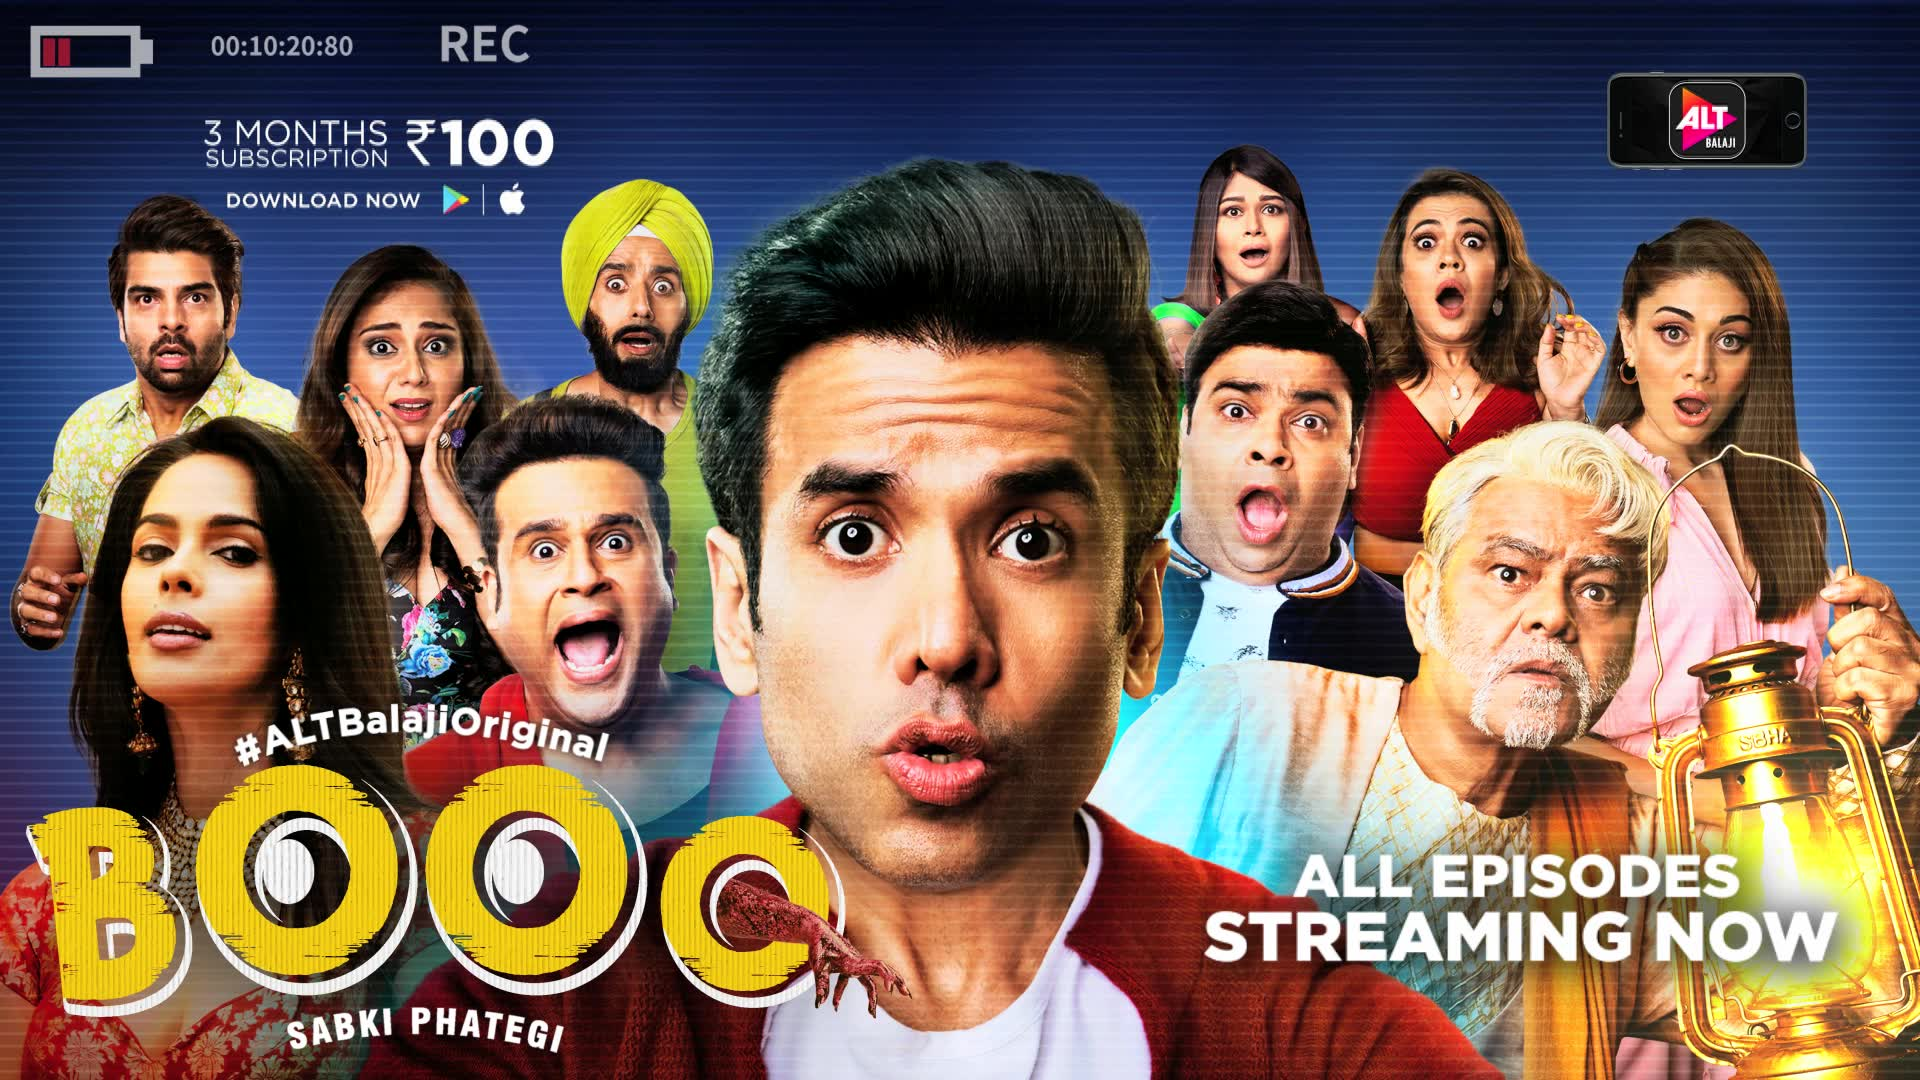 ALTBalaji | Booo Sabki Phategi | All episodes streaming now